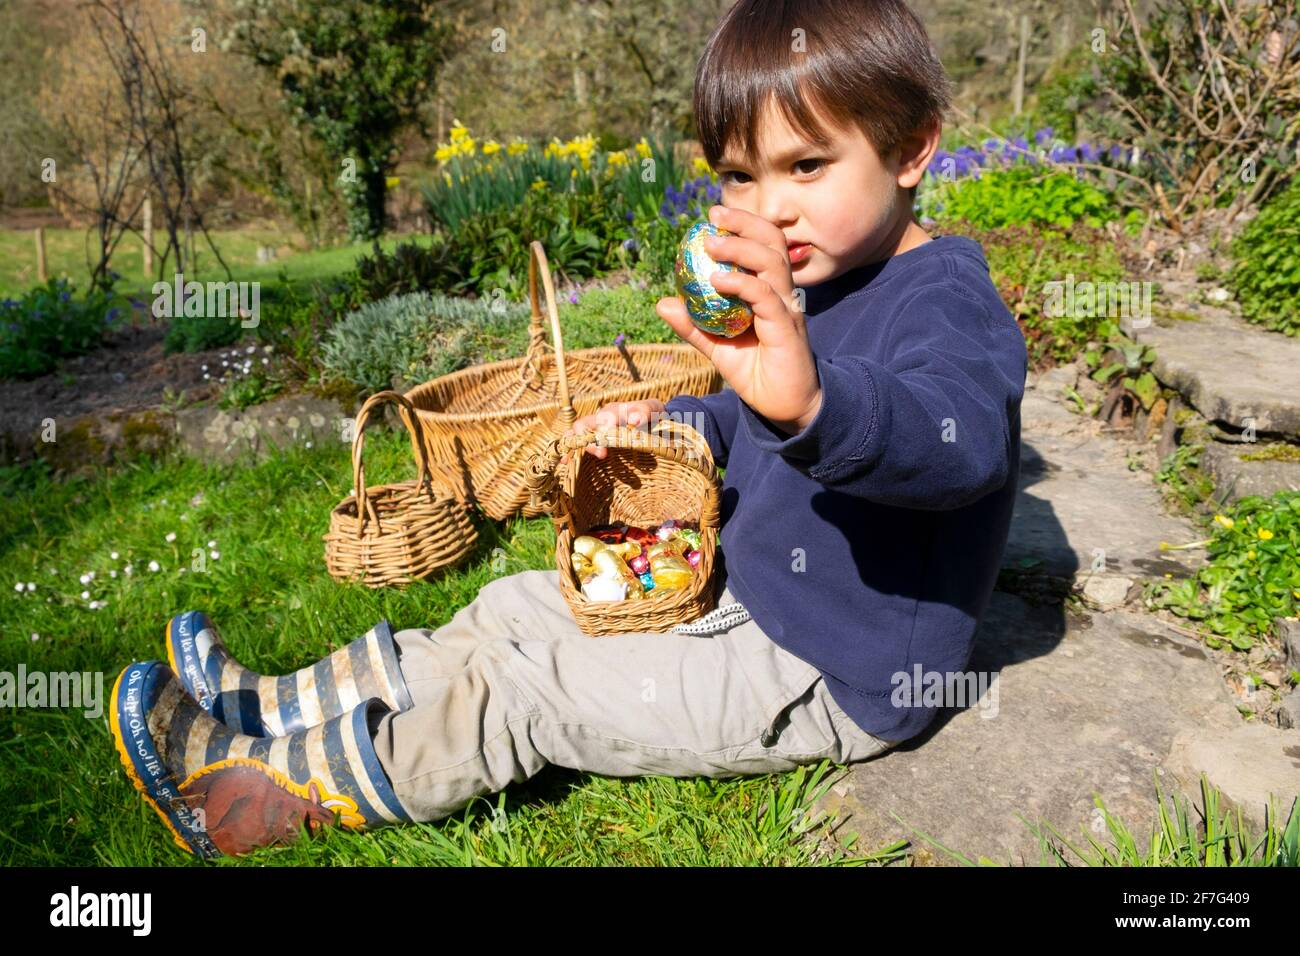 Child young boy sitting in garden after Easter egg hunt with basket of Easter eggs holding showing big chocolate egg in his hand Wales UK KATHY DEWITT Stock Photo